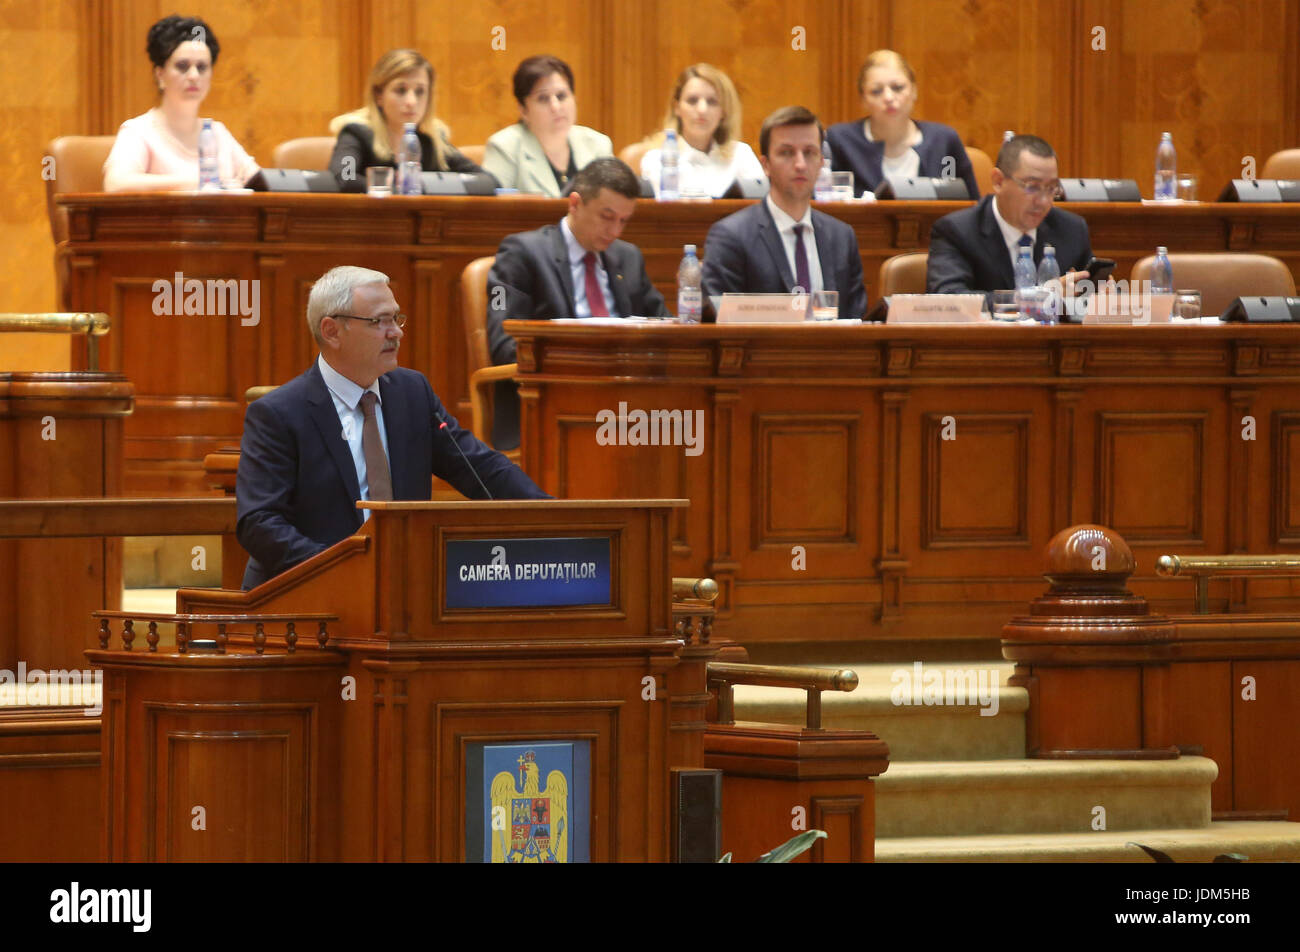 Bucharest, Romania. 21st June, 2017. Social Democratic Party leader Liviu Dragnea speaks at the parliament before - Stock Image